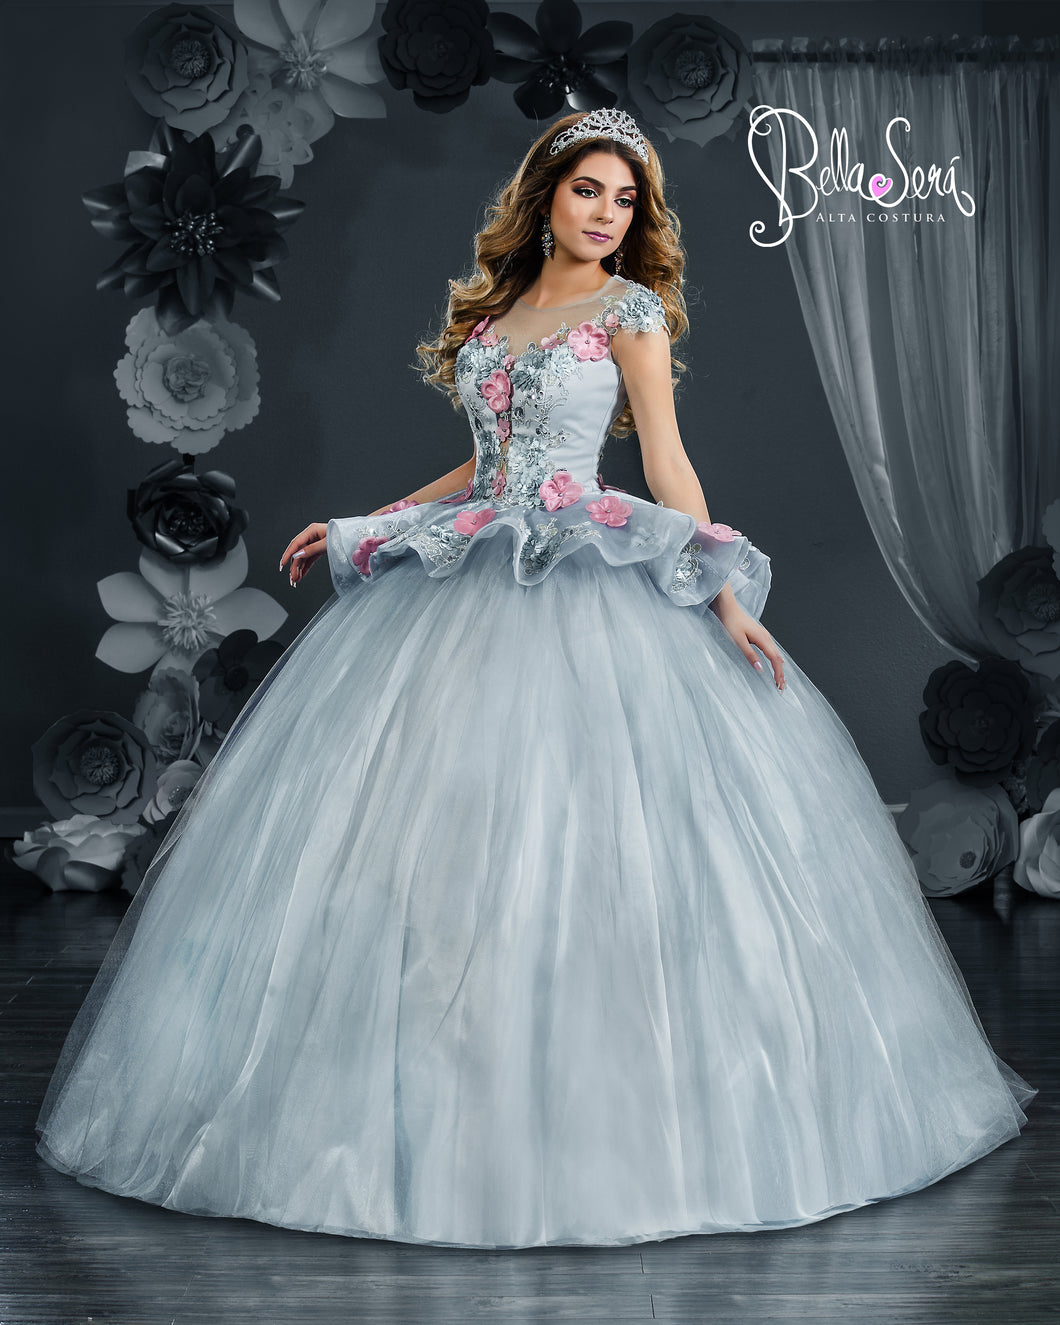 QUINCEANERA DRESS Style 1813 - bella-sera-dresses.com